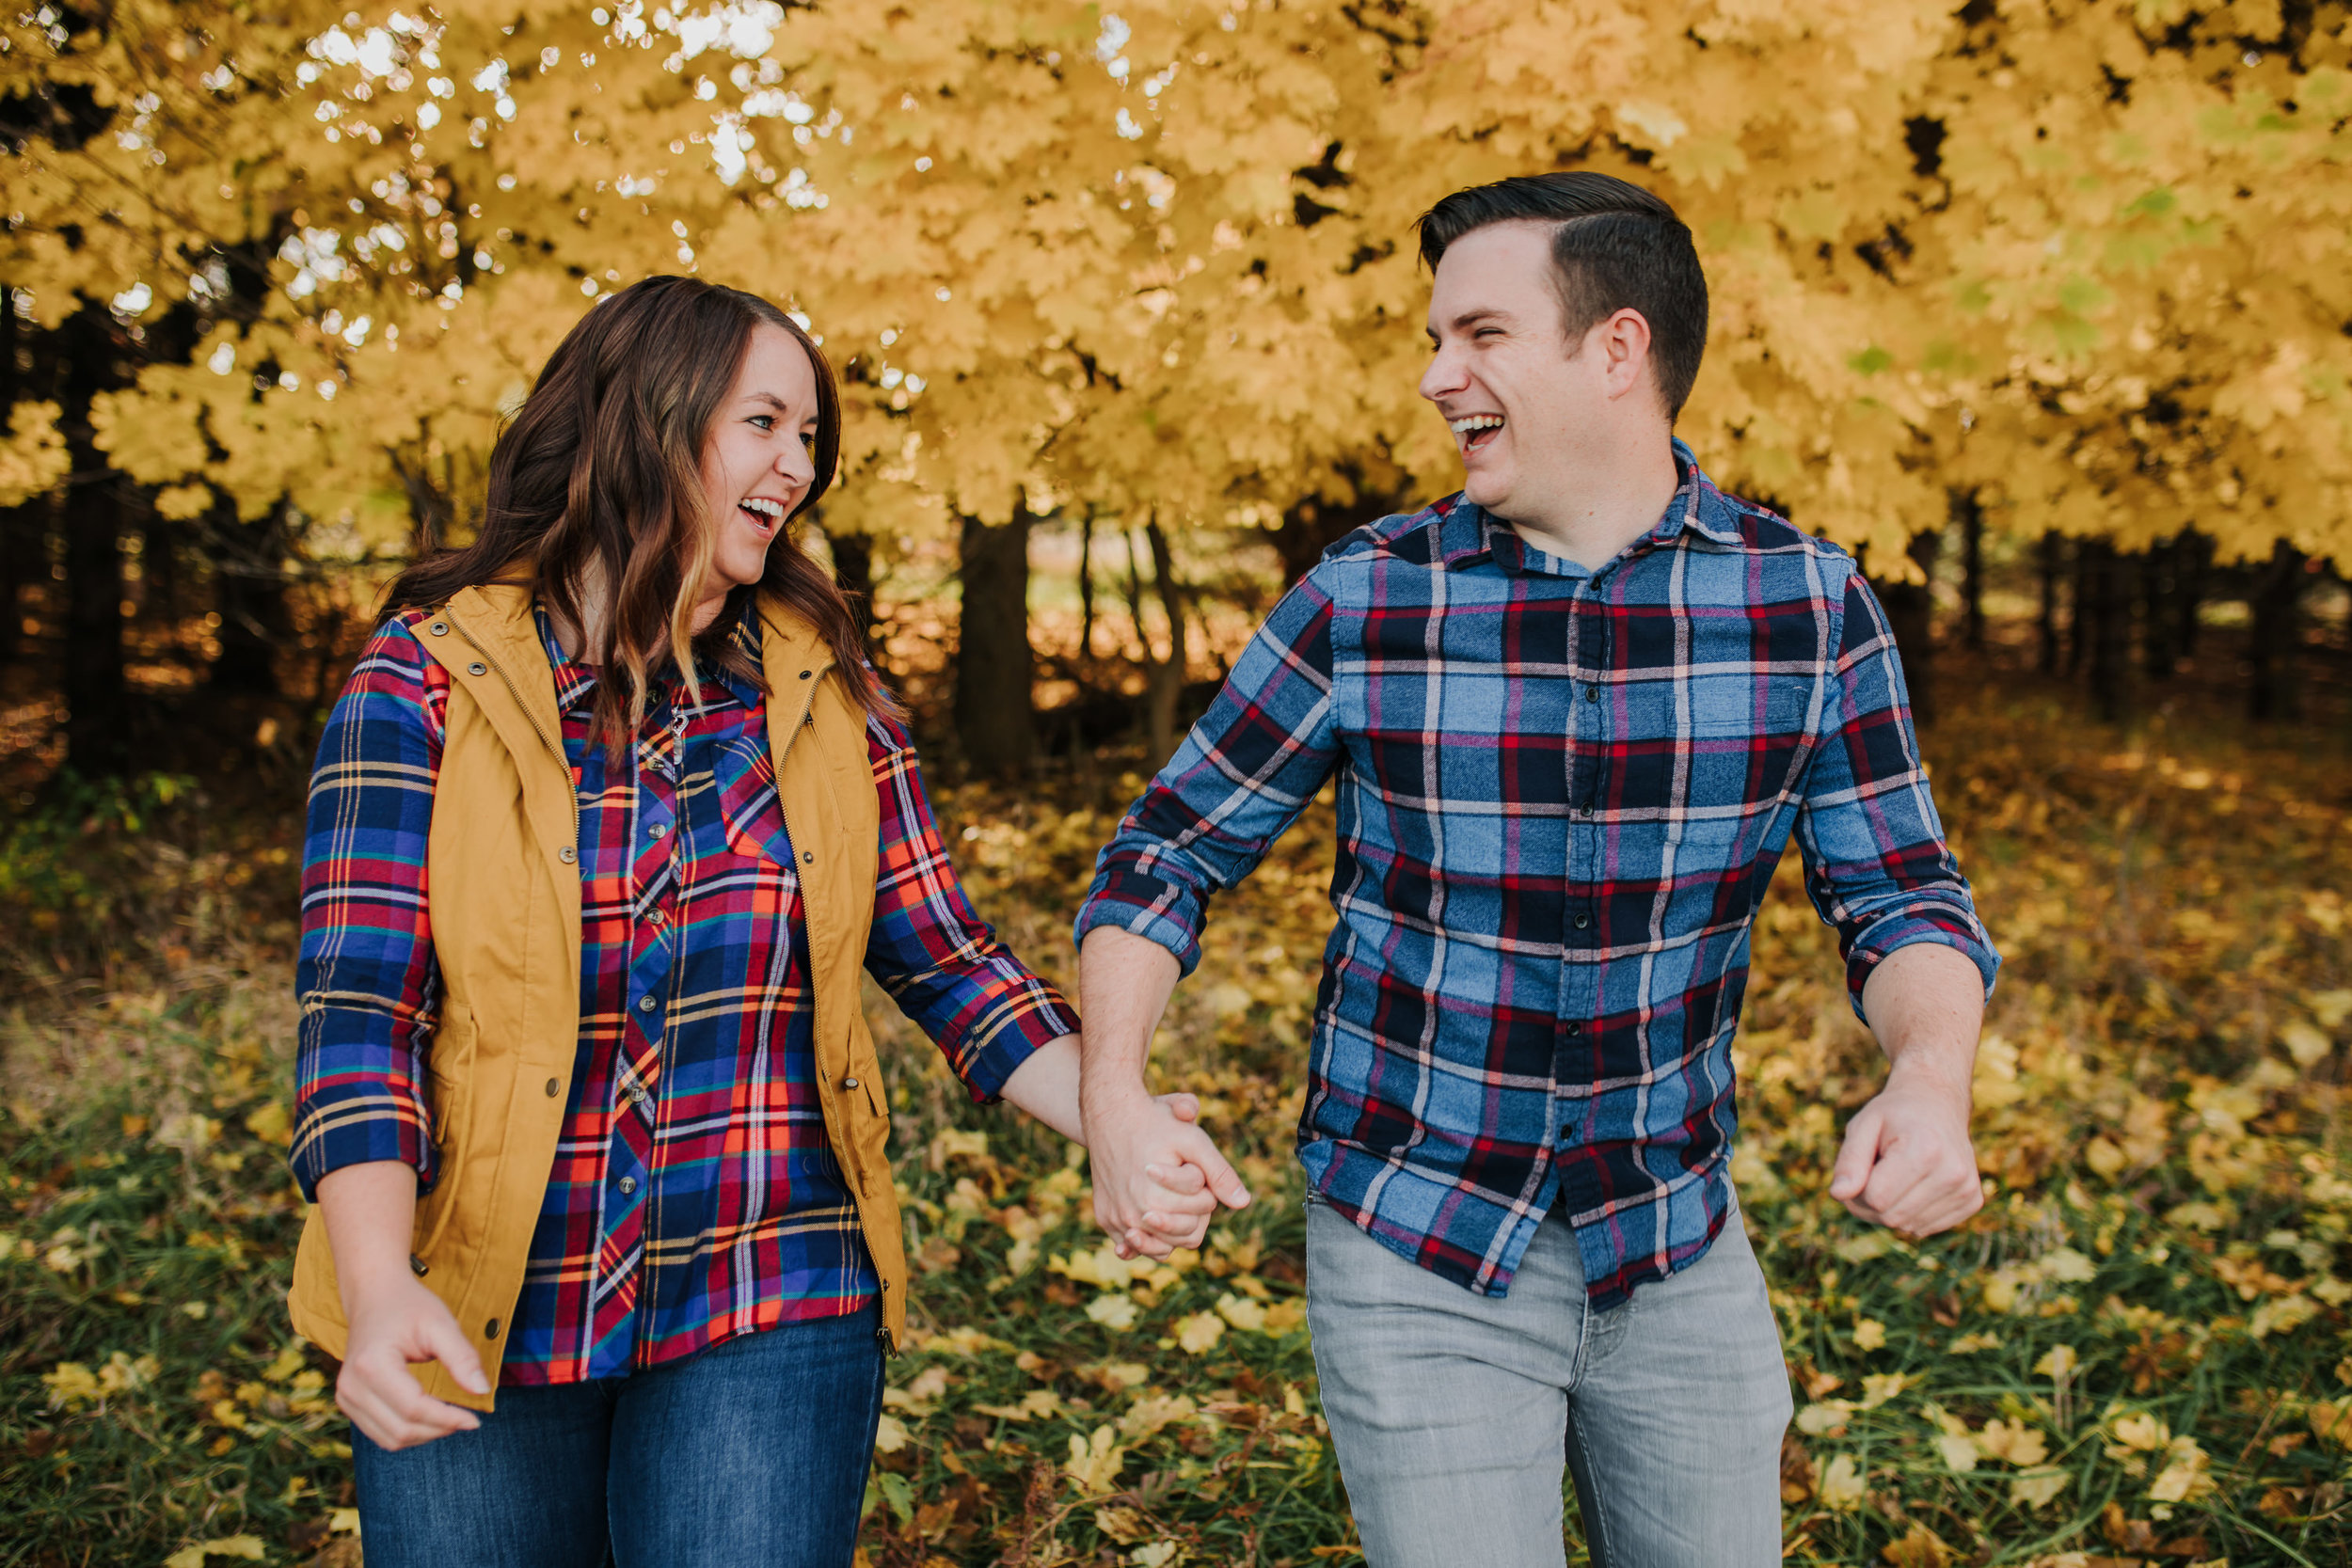 Katie & Adam - Engaged - Nathaniel Jensen Photography - Omaha Nebraska Wedding Photograper - Omaha Nebraska Engagement Session - Chalco Hills Engagement Session-10.jpg